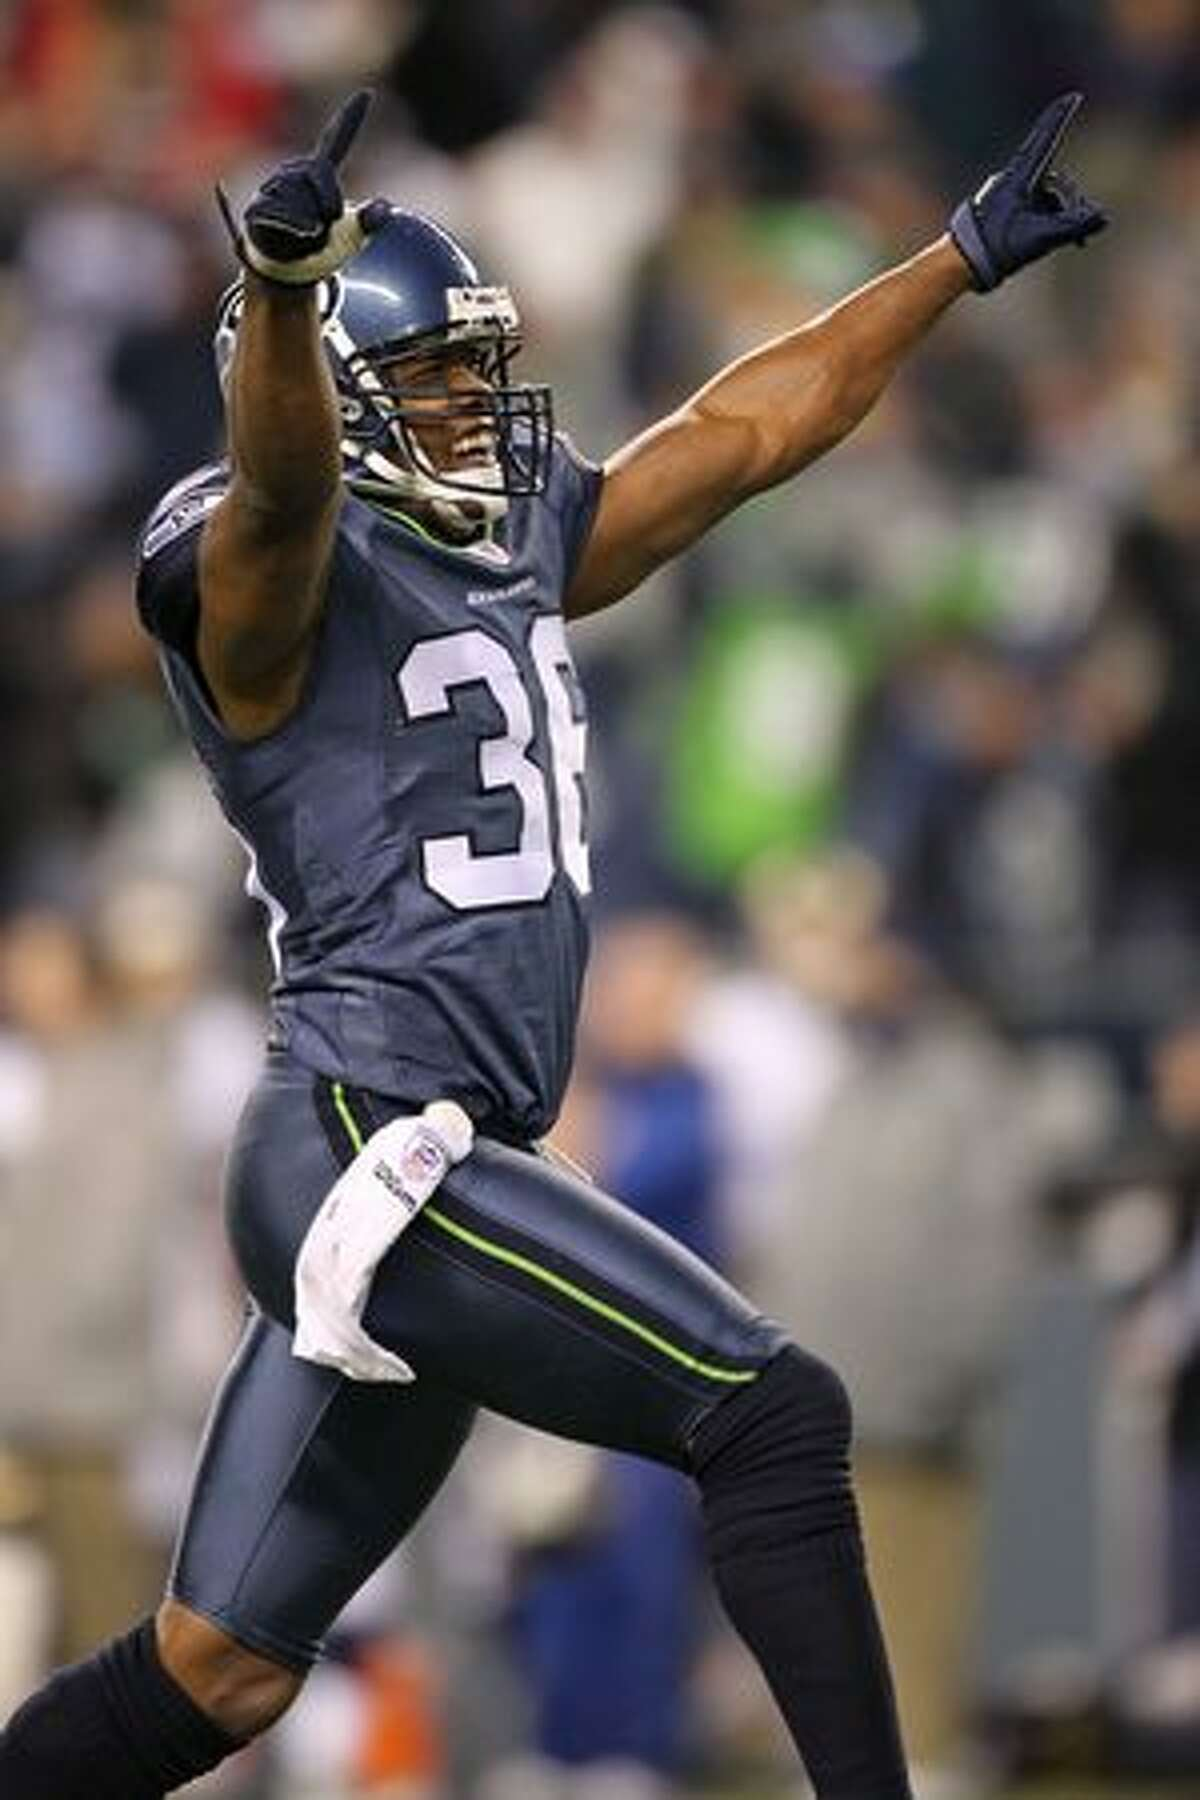 Lawyer Milloy: Lincoln High School (Tacoma). College: University of Washington Milloy was a star safety from 1996 to 2010 for teams including the New England Patriots, Buffalo Bills, Atlanta Falcons and Seattle Seahawks. Career highlights: Super Bowl champion: 2001 4x Pro Bowl: 1998, 1999, 2001, 2002 First team All-Pro: 1999 Second team All-Pro New England Patriots All-1990s Team New England Patriots All-2000s Team